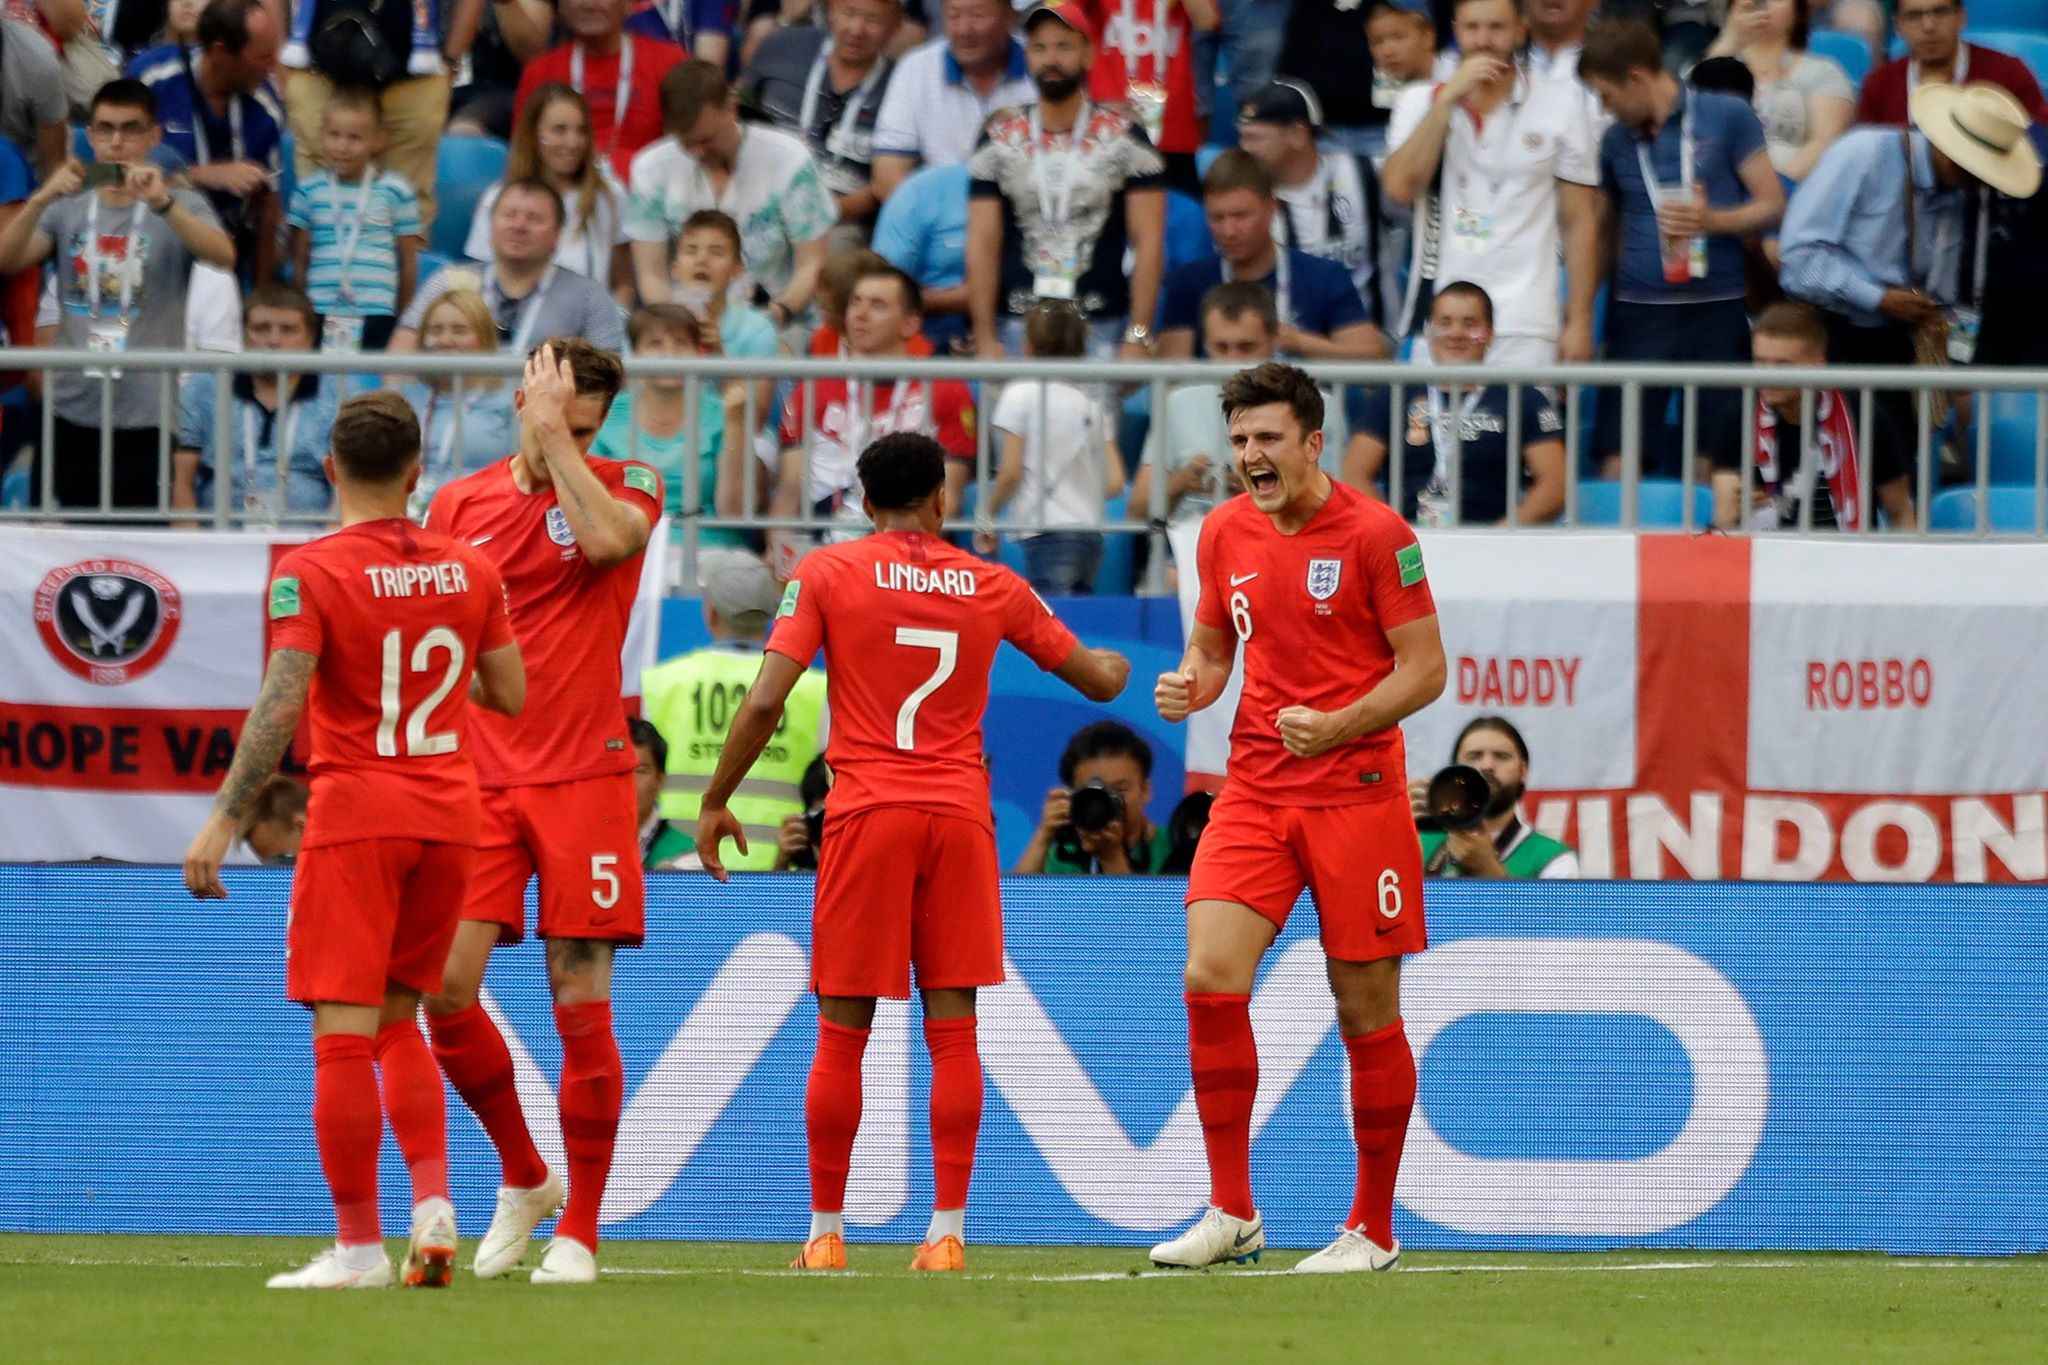 Croatia identify England danger man for semi-final